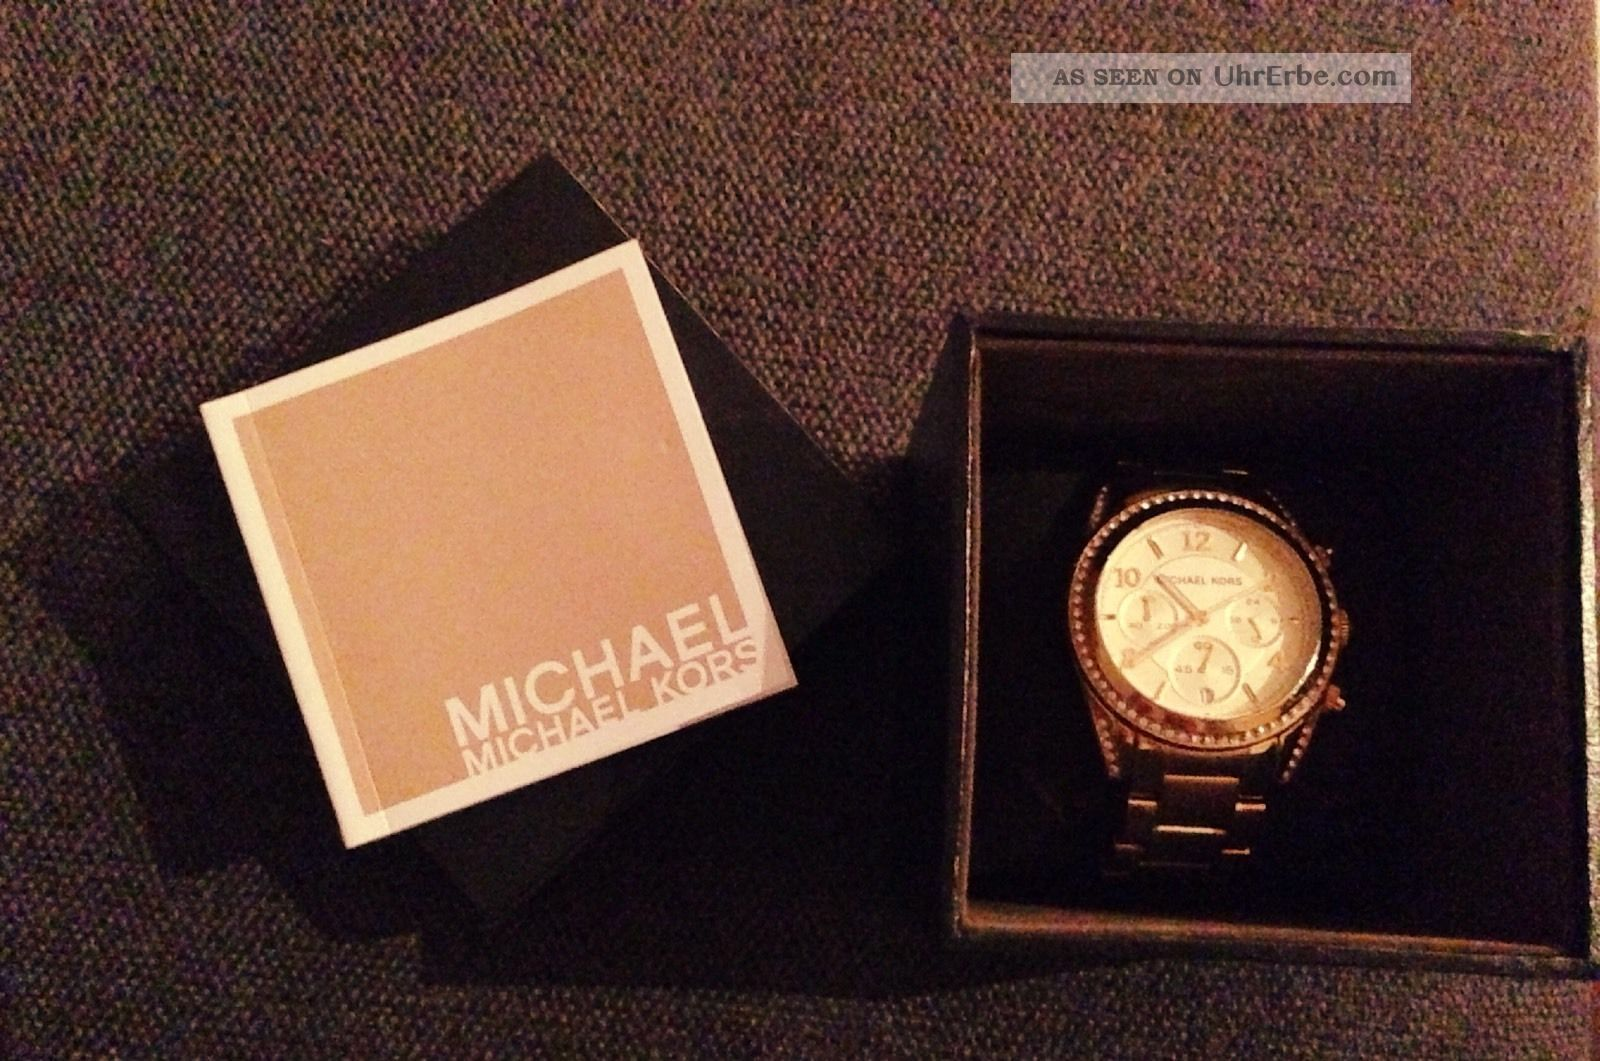 Michael Kors Gold Chronograph Zirkonia Damenuhr Ladies Watch Ritz Mk567 Armbanduhren Bild